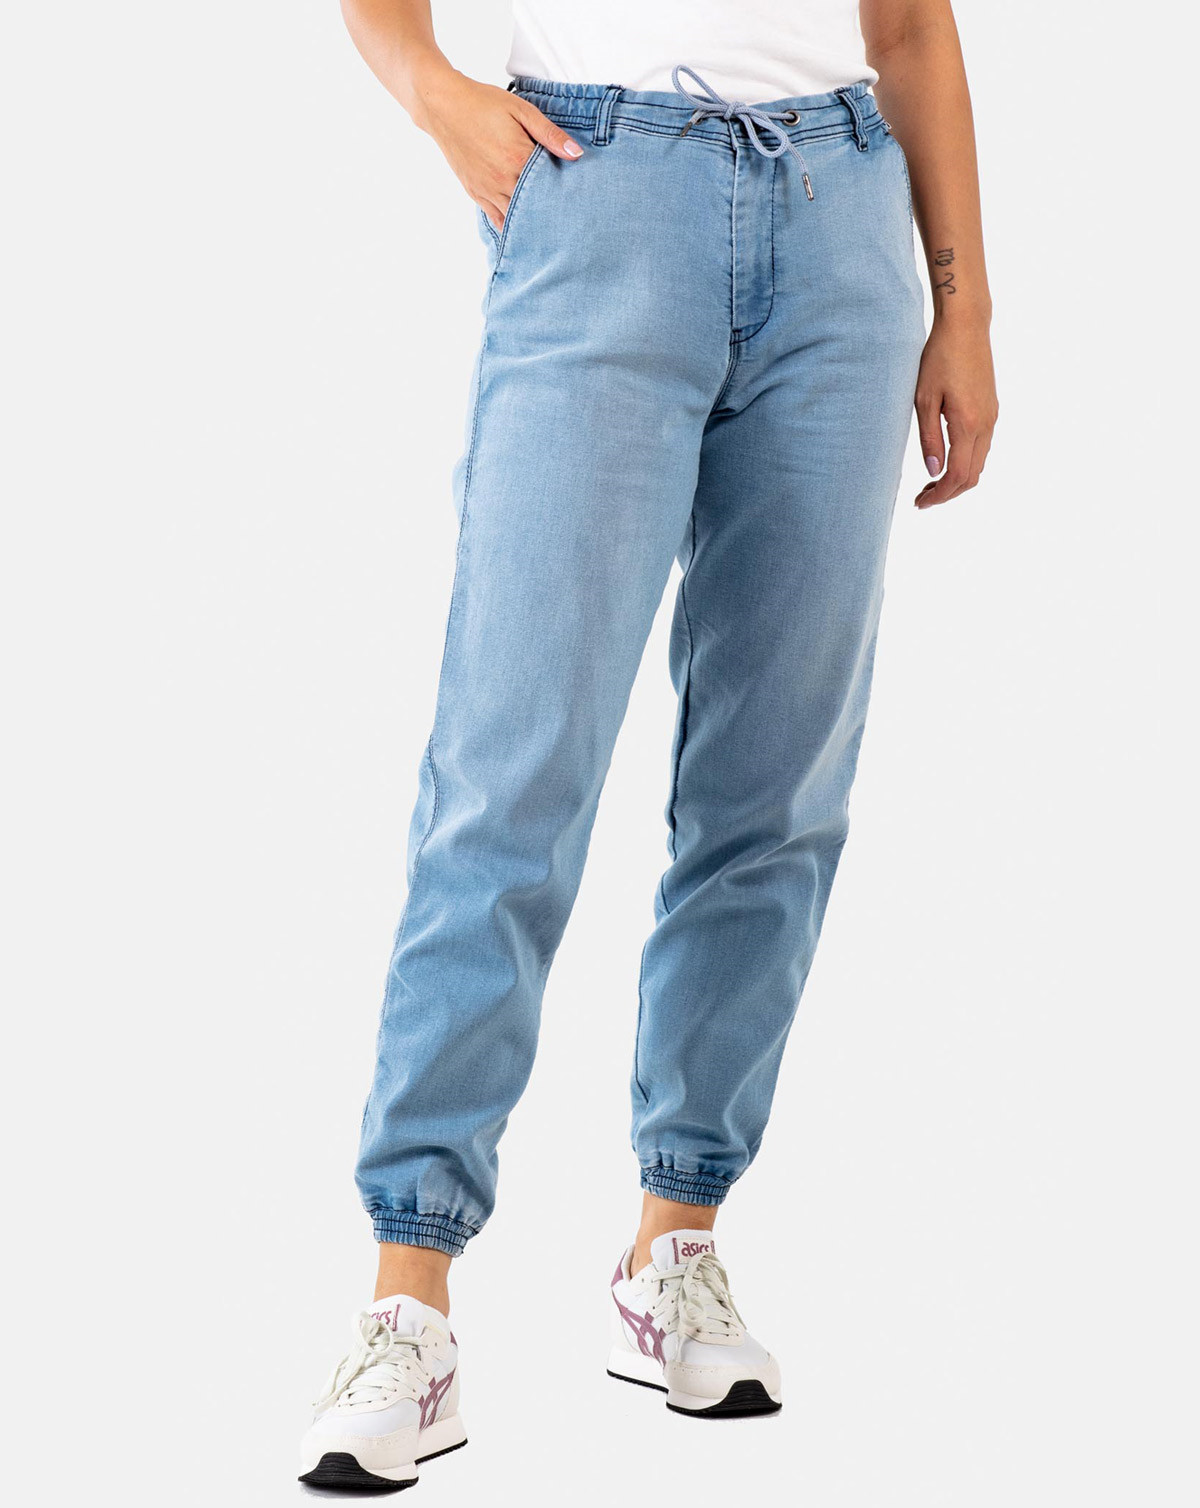 Reell Reflex Women Pant (Light Blue Denim, XS - Long)